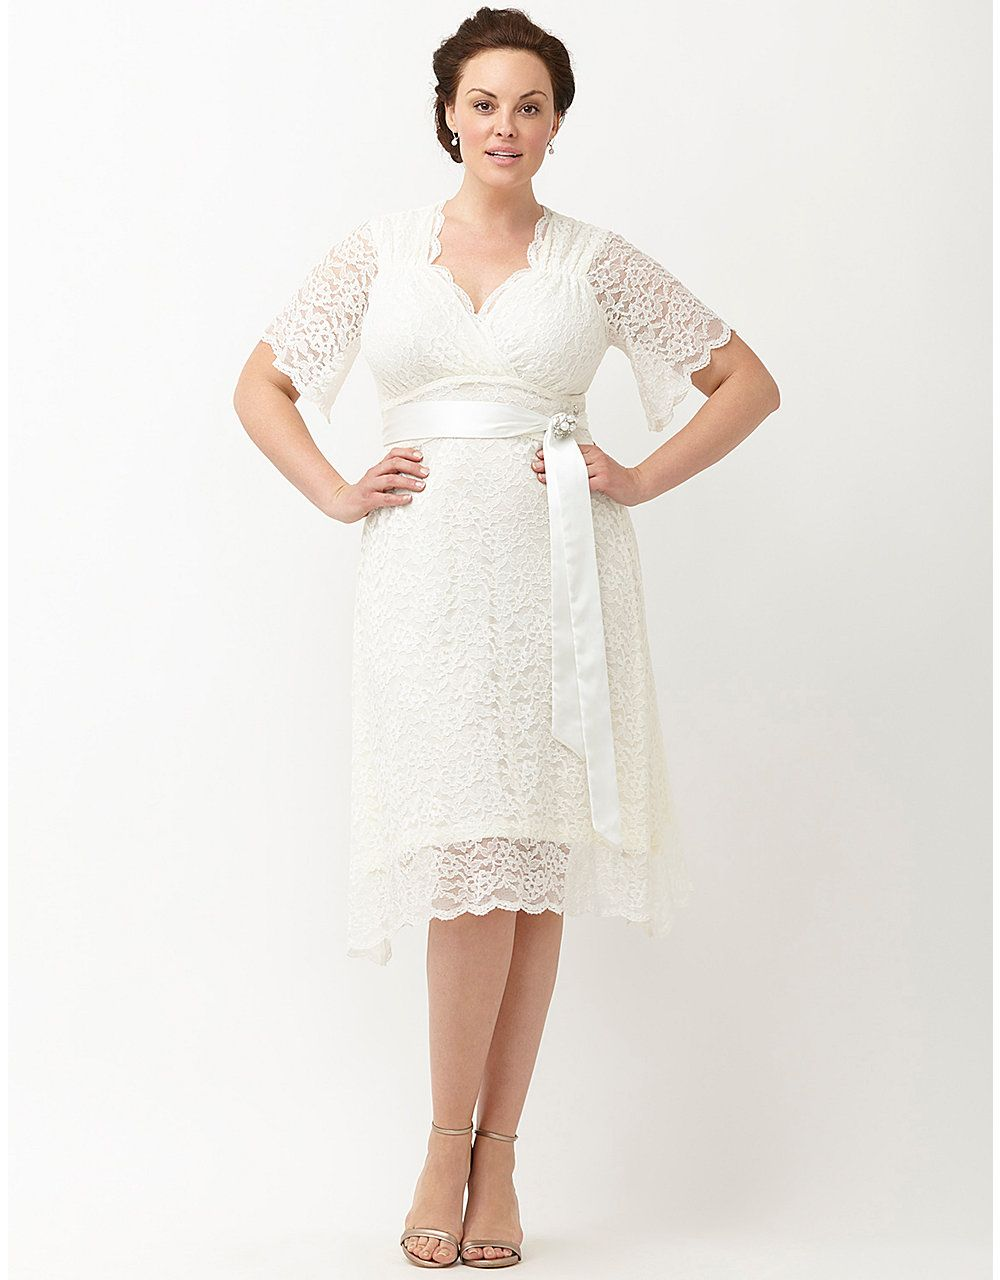 Lace Confection Wedding Dress By Kiyonna Lane Bryant